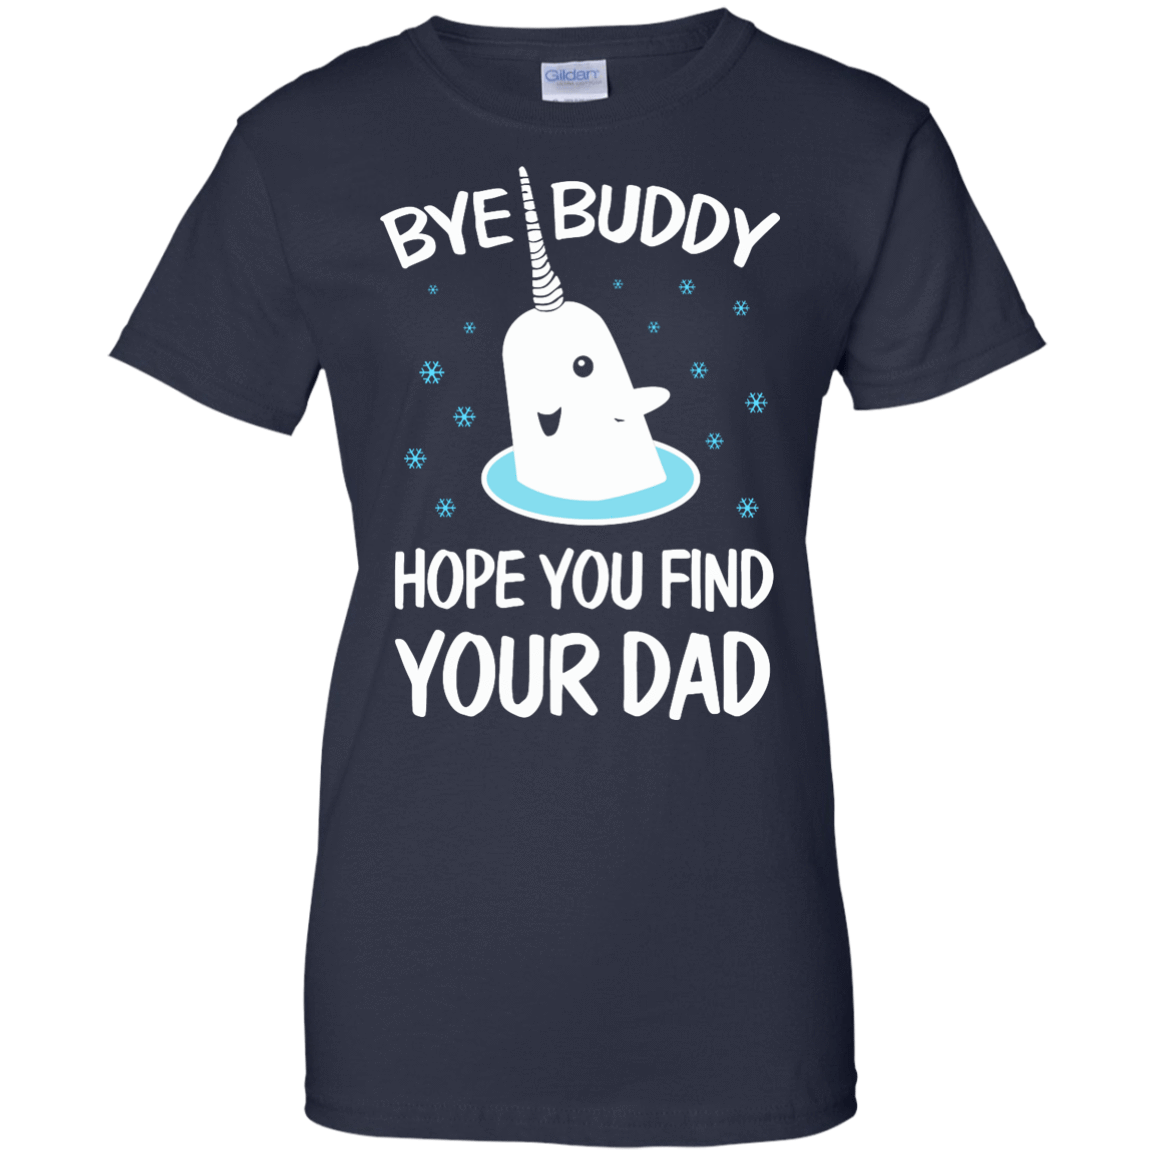 Bye Buddy Hope You Find Your Dad Shirt Hoodie Tank 0steescom